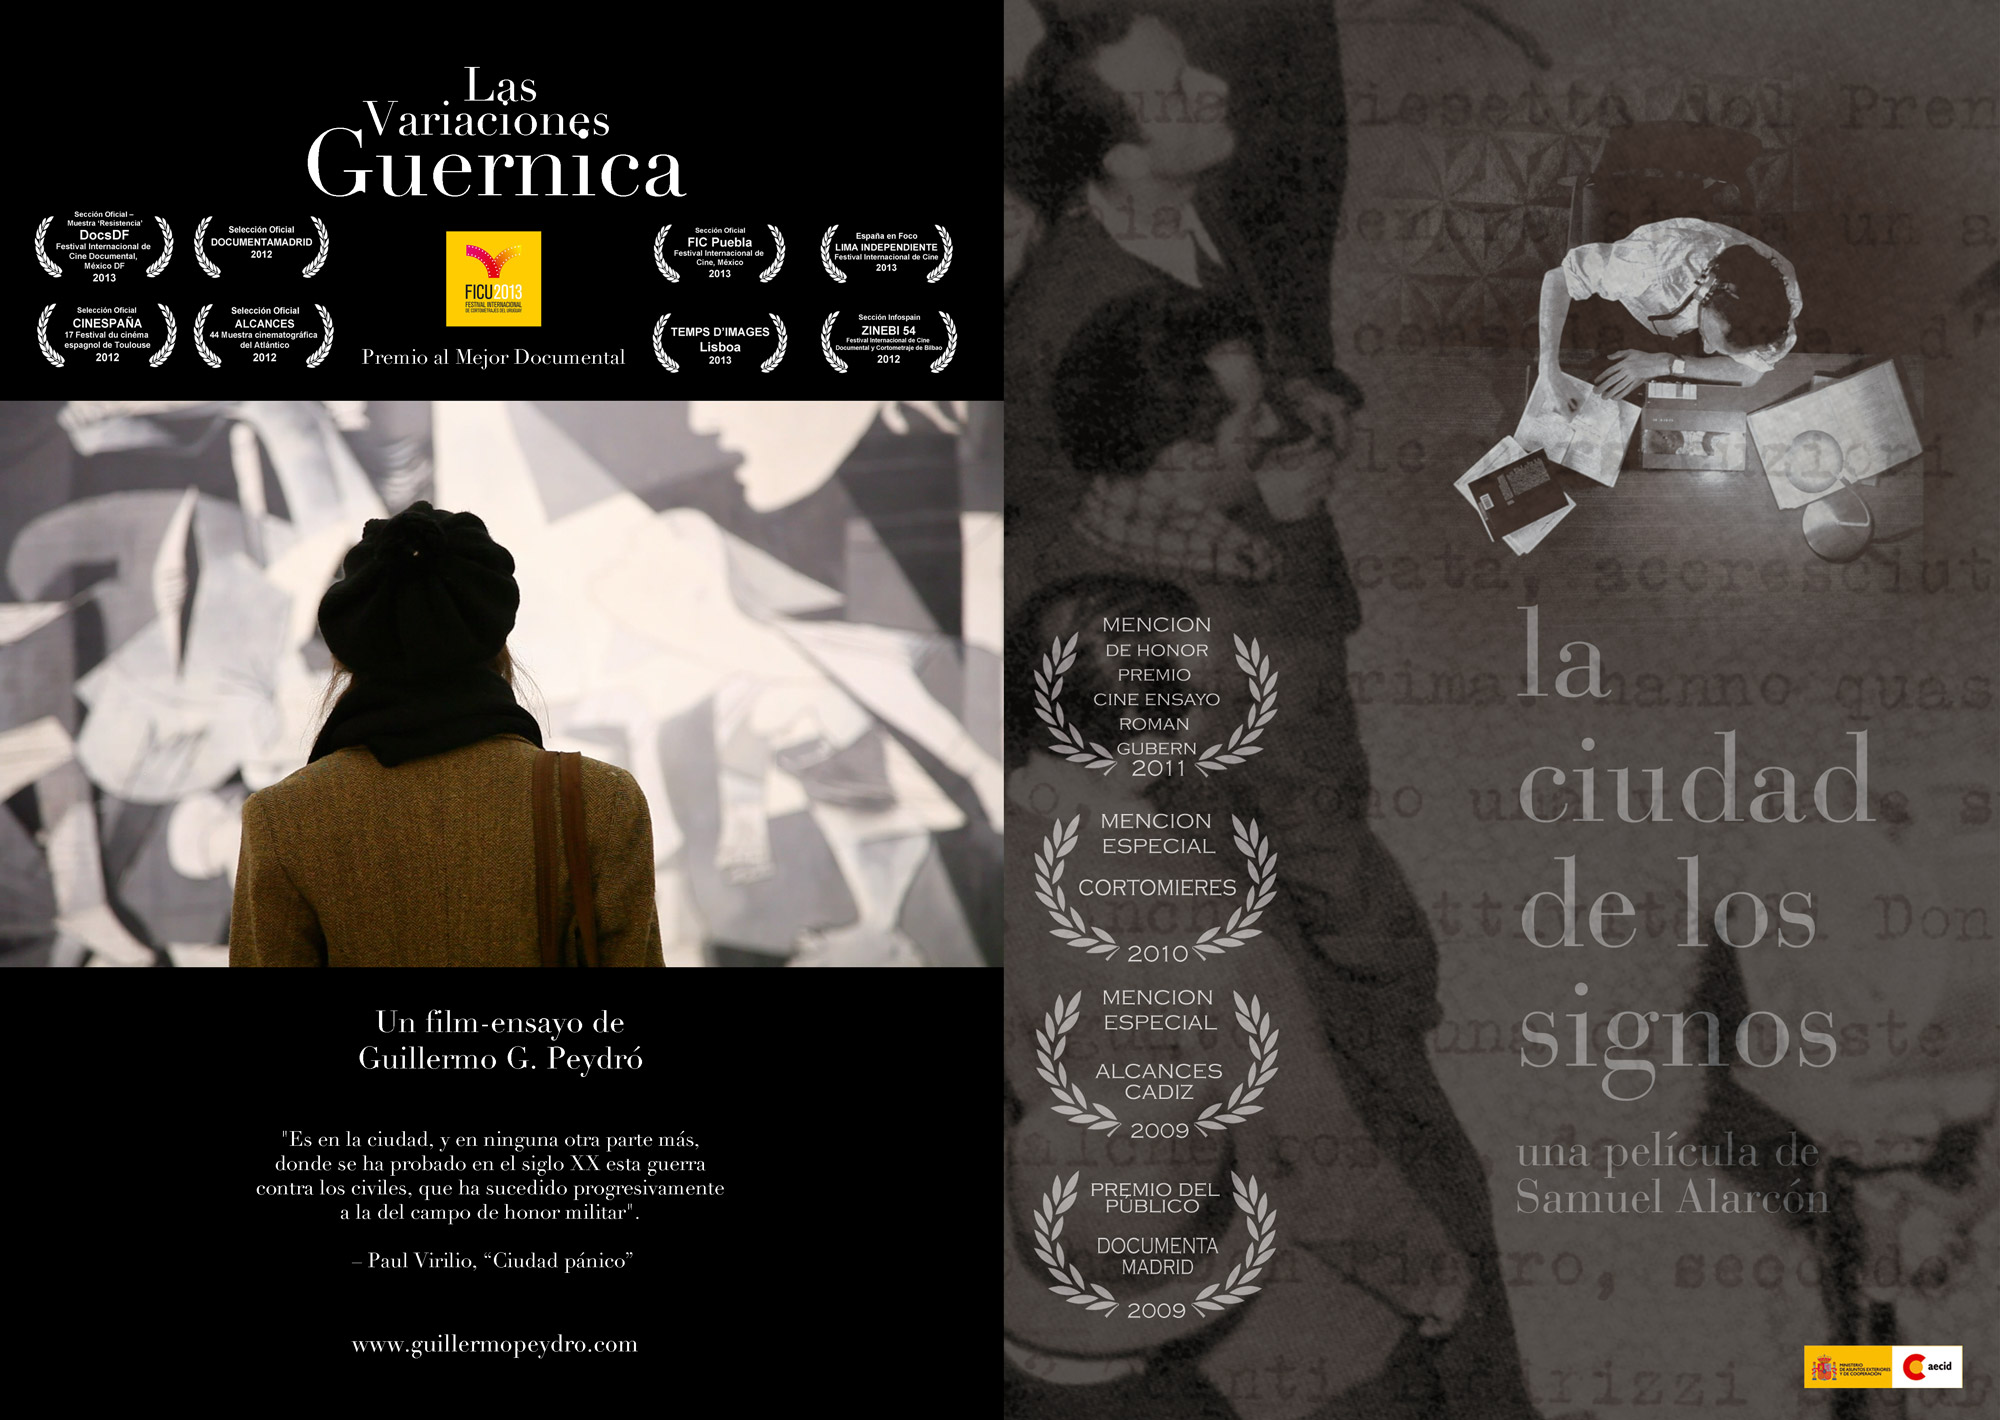 [Meet the Filmmakers! The Guernica Variations and City of Signs]